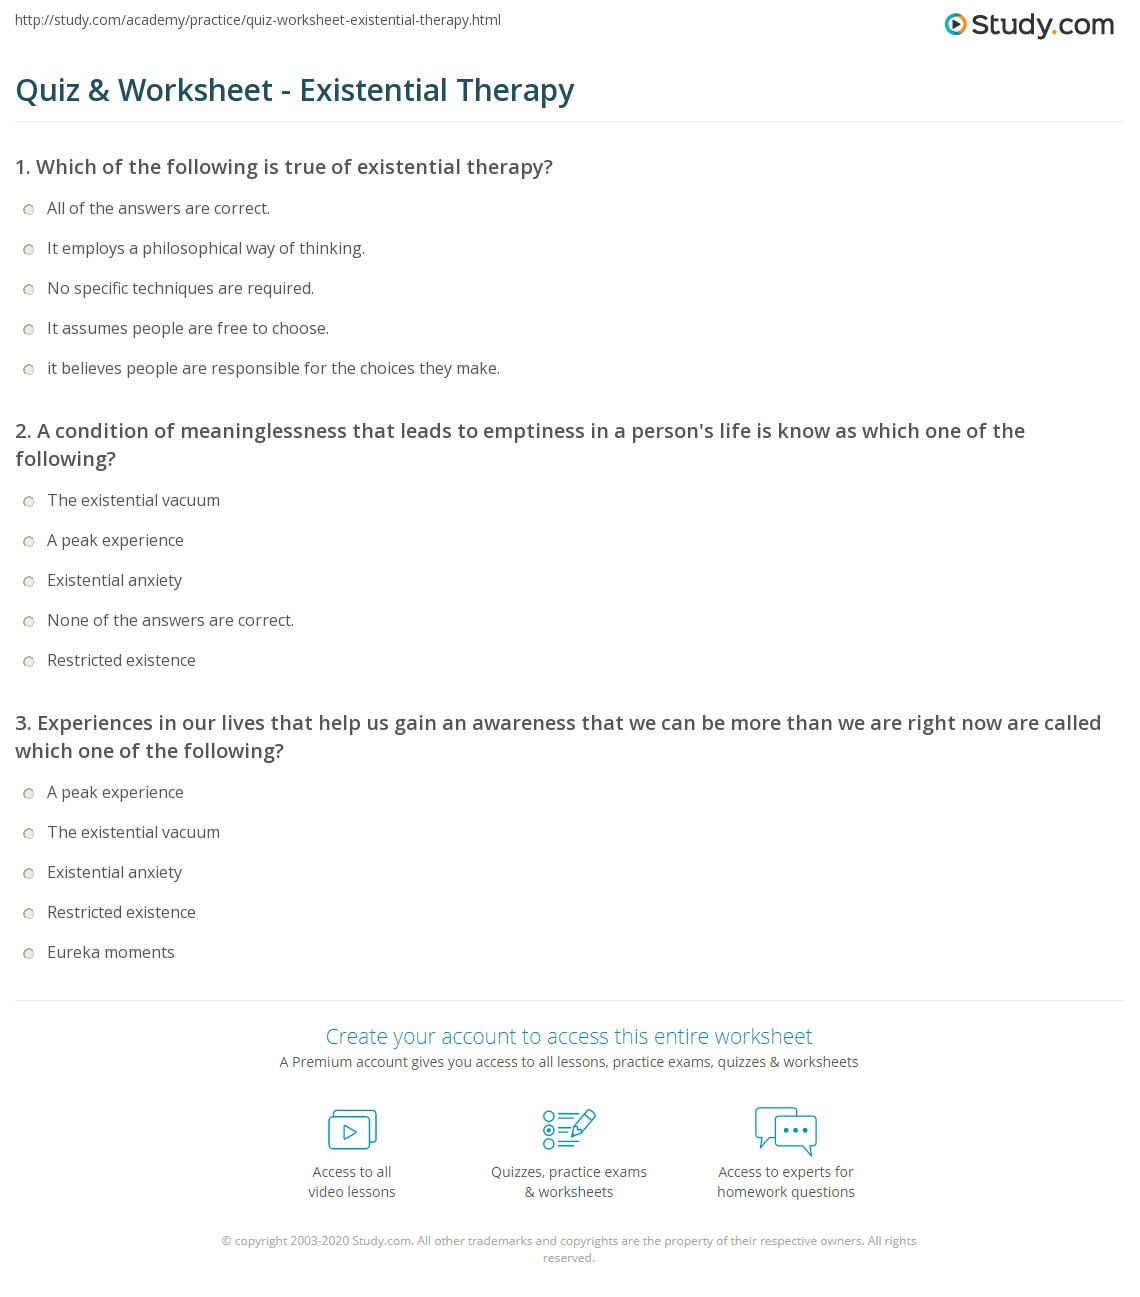 worksheet Psychotherapy Worksheets psychotherapy worksheets for school pigmu quiz worksheet existential therapy study com